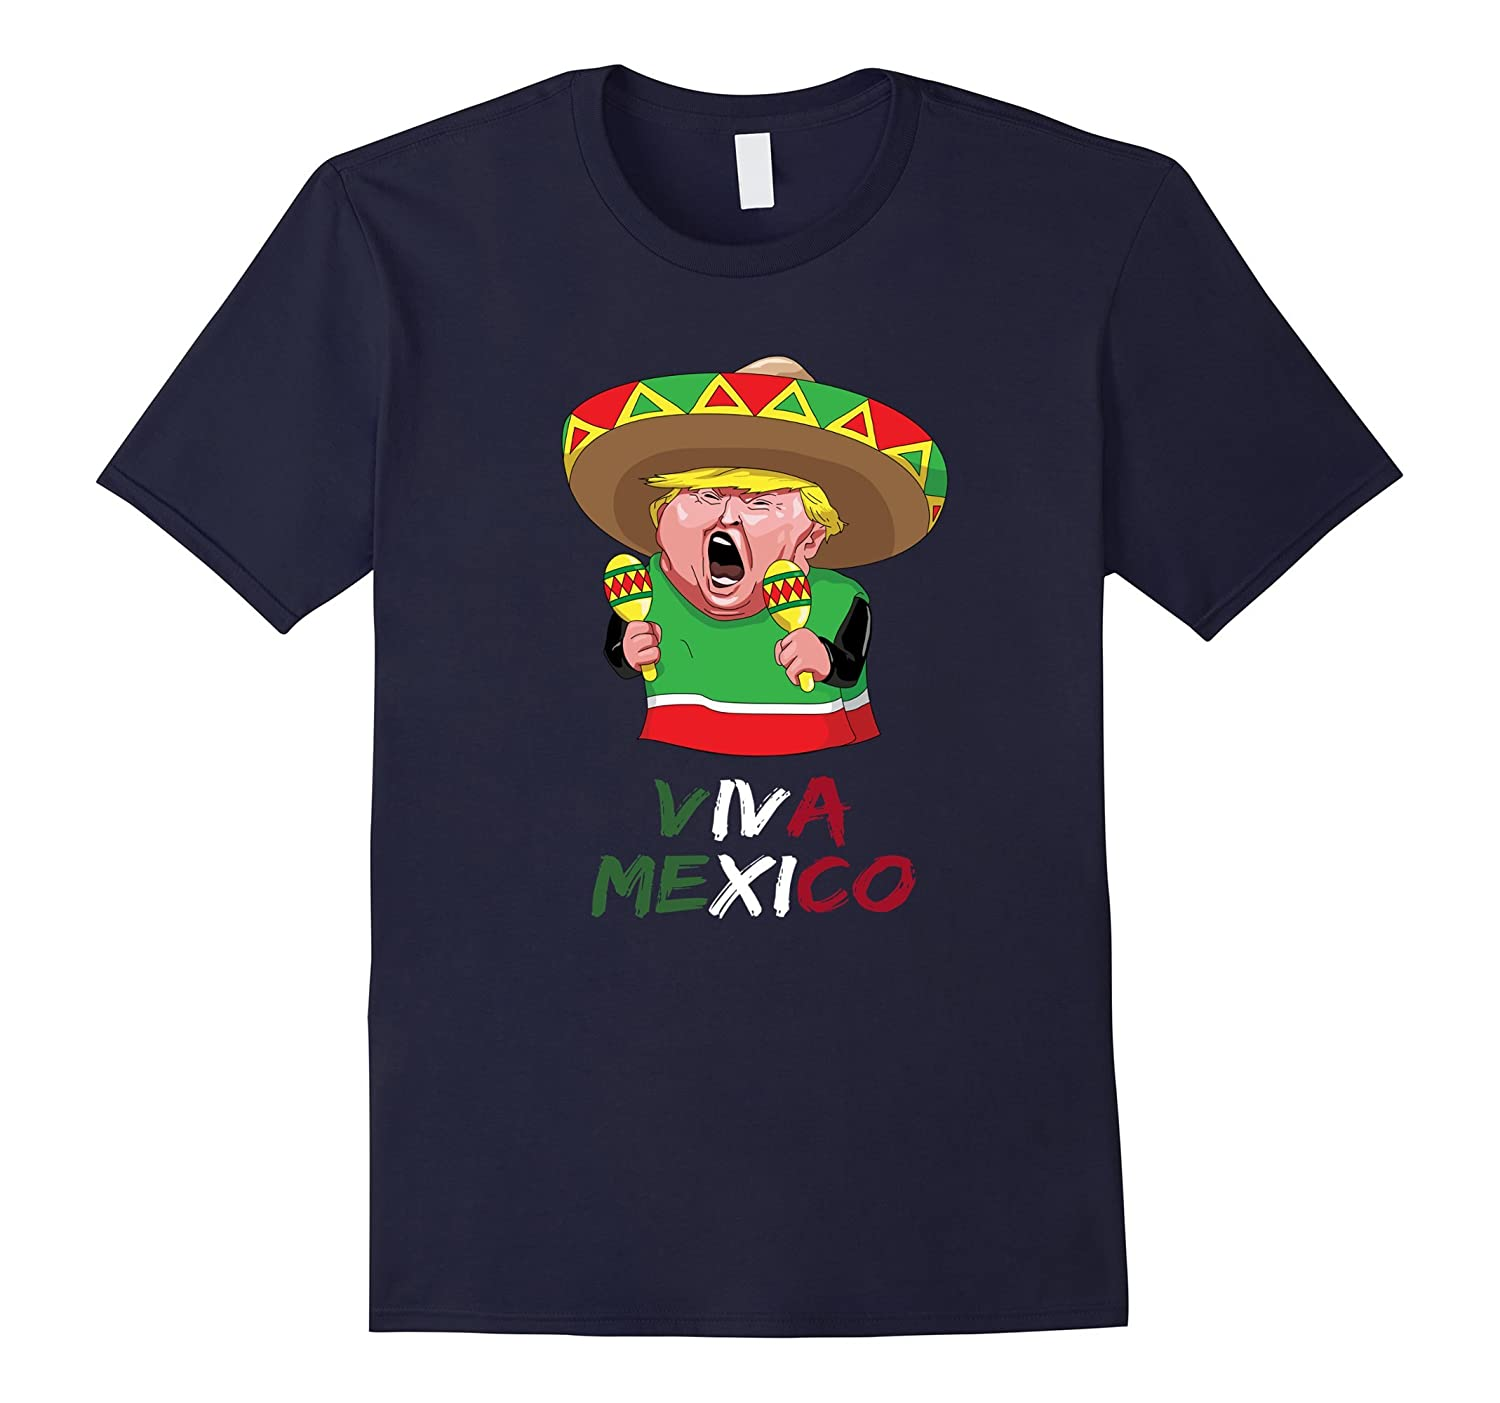 Donald Trump The Mexican Funny T-shirt Viva Mexico-BN